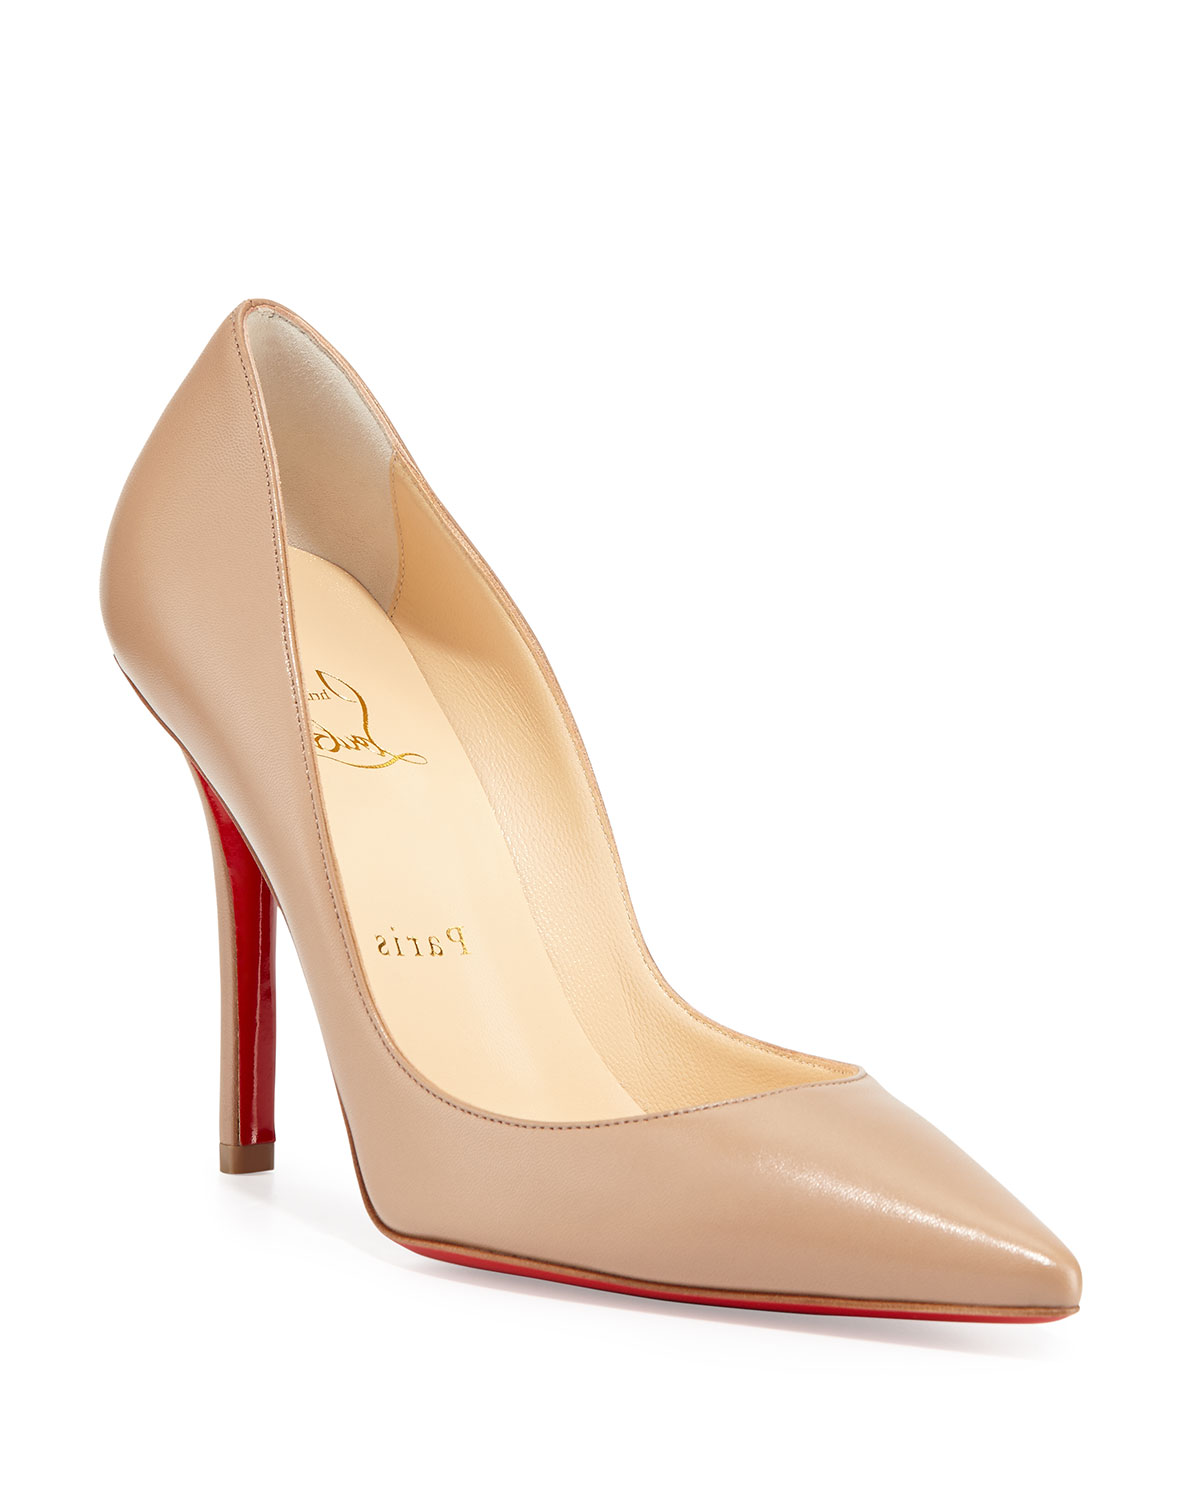 1797729f9b Christian Louboutin Apostrophy Pointed Red-Sole Pump | Neiman Marcus